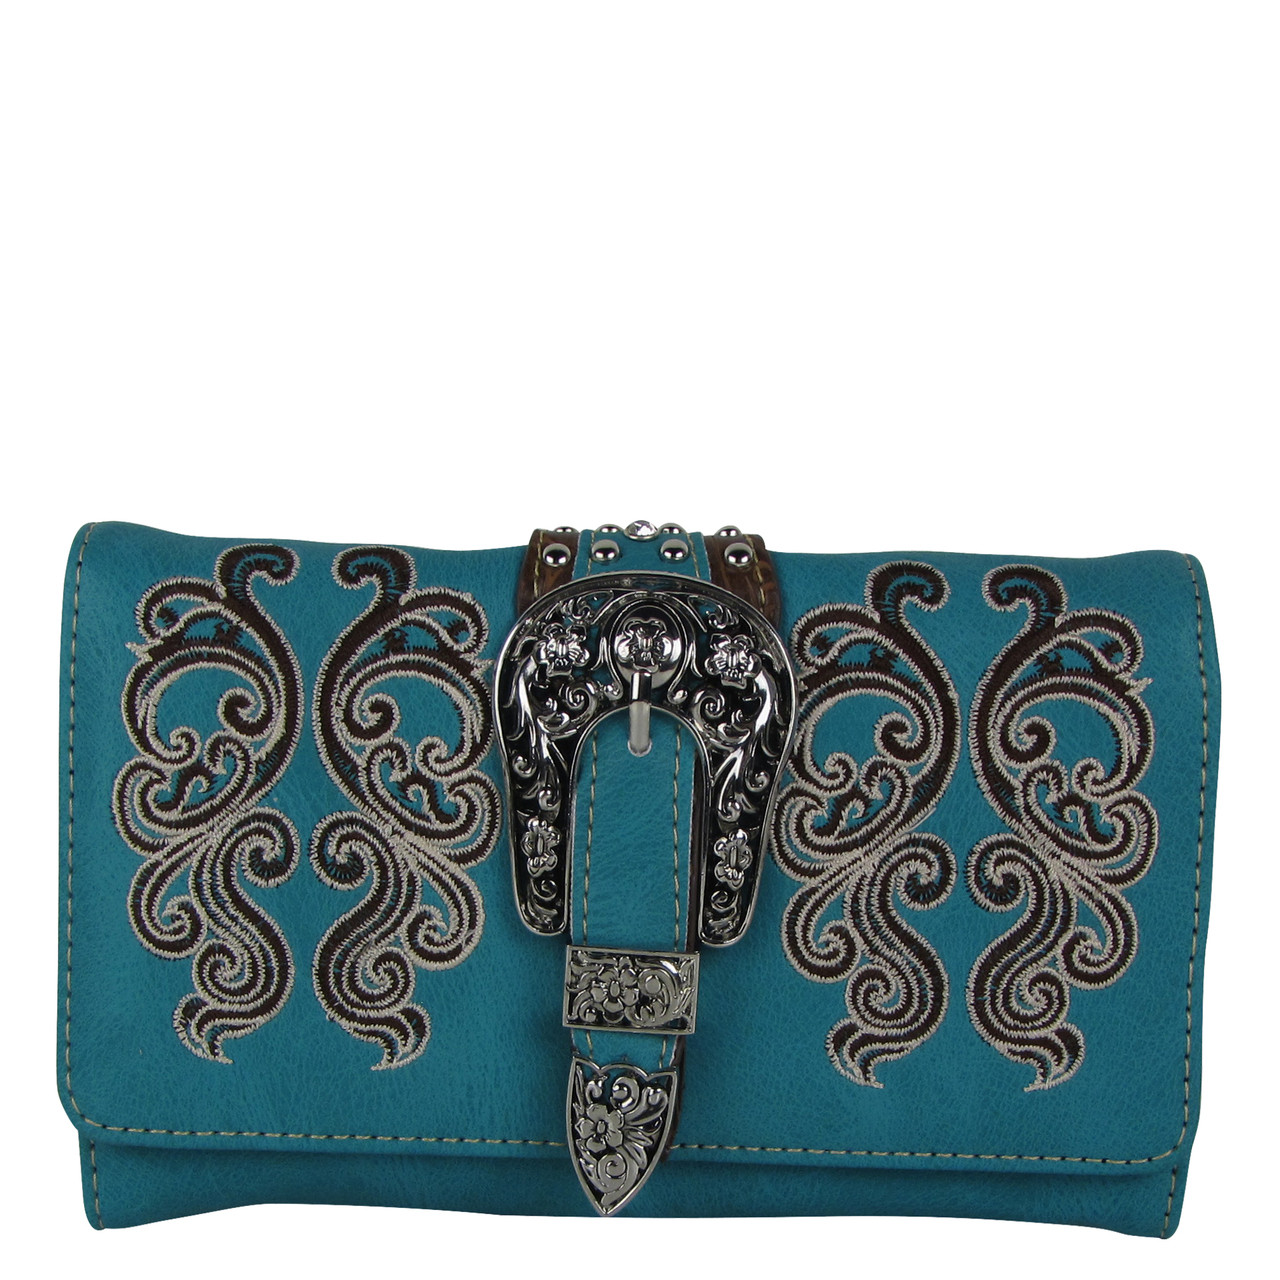 TURQUOISE WESTERN BUCKLE LOOK CLUTCH TRIFOLD WALLET CW1-1277TRQ